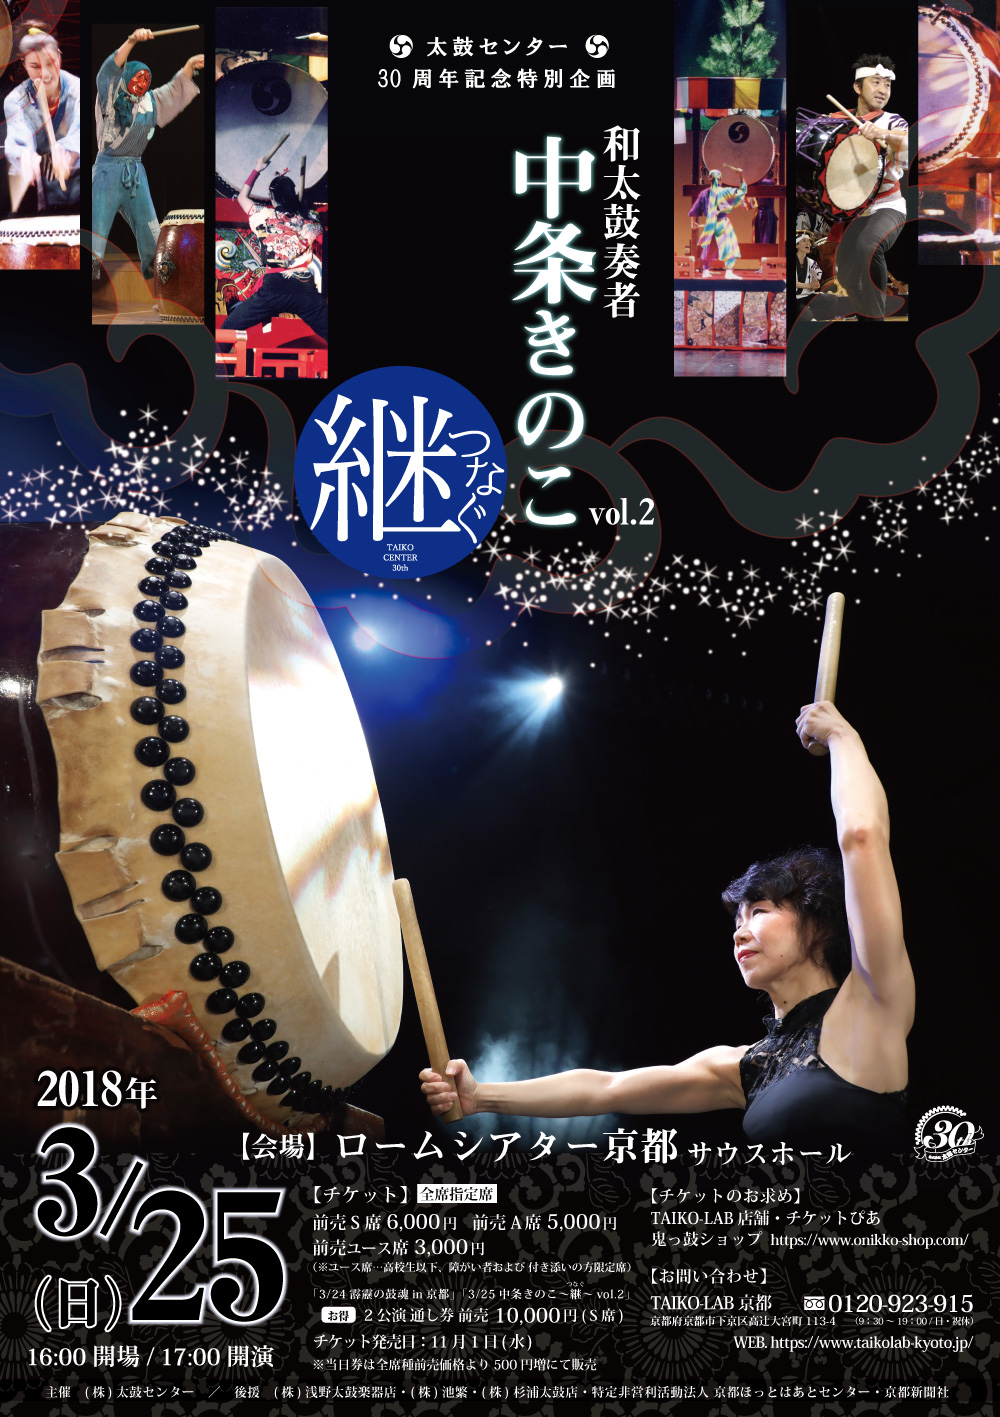 TAIKO-CENTER 30th Anniversary Concert 「TSUNAGU」